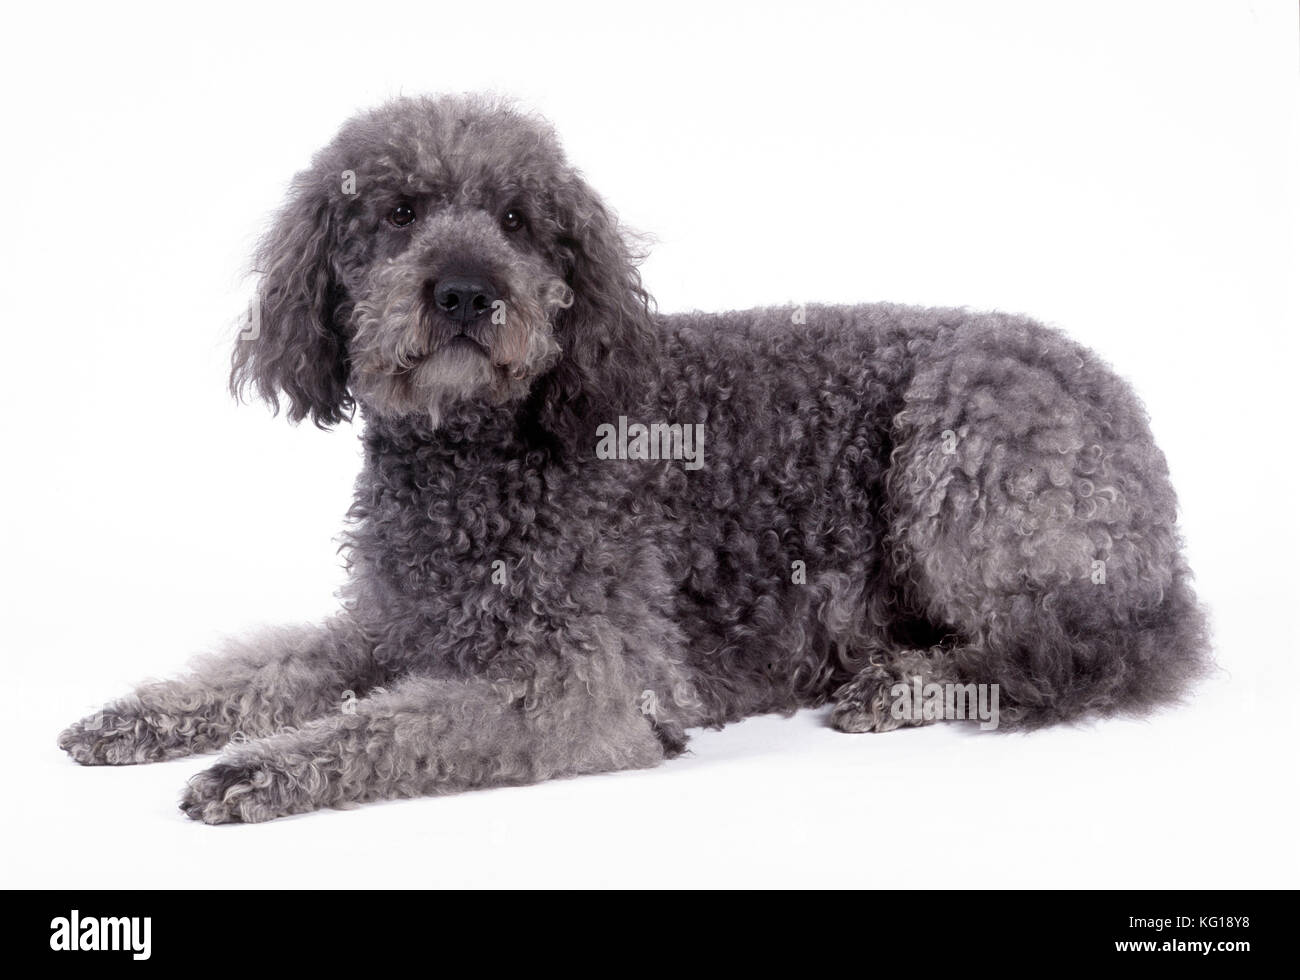 Poodle Cross Stock Photos & Poodle Cross Stock Images - Alamy